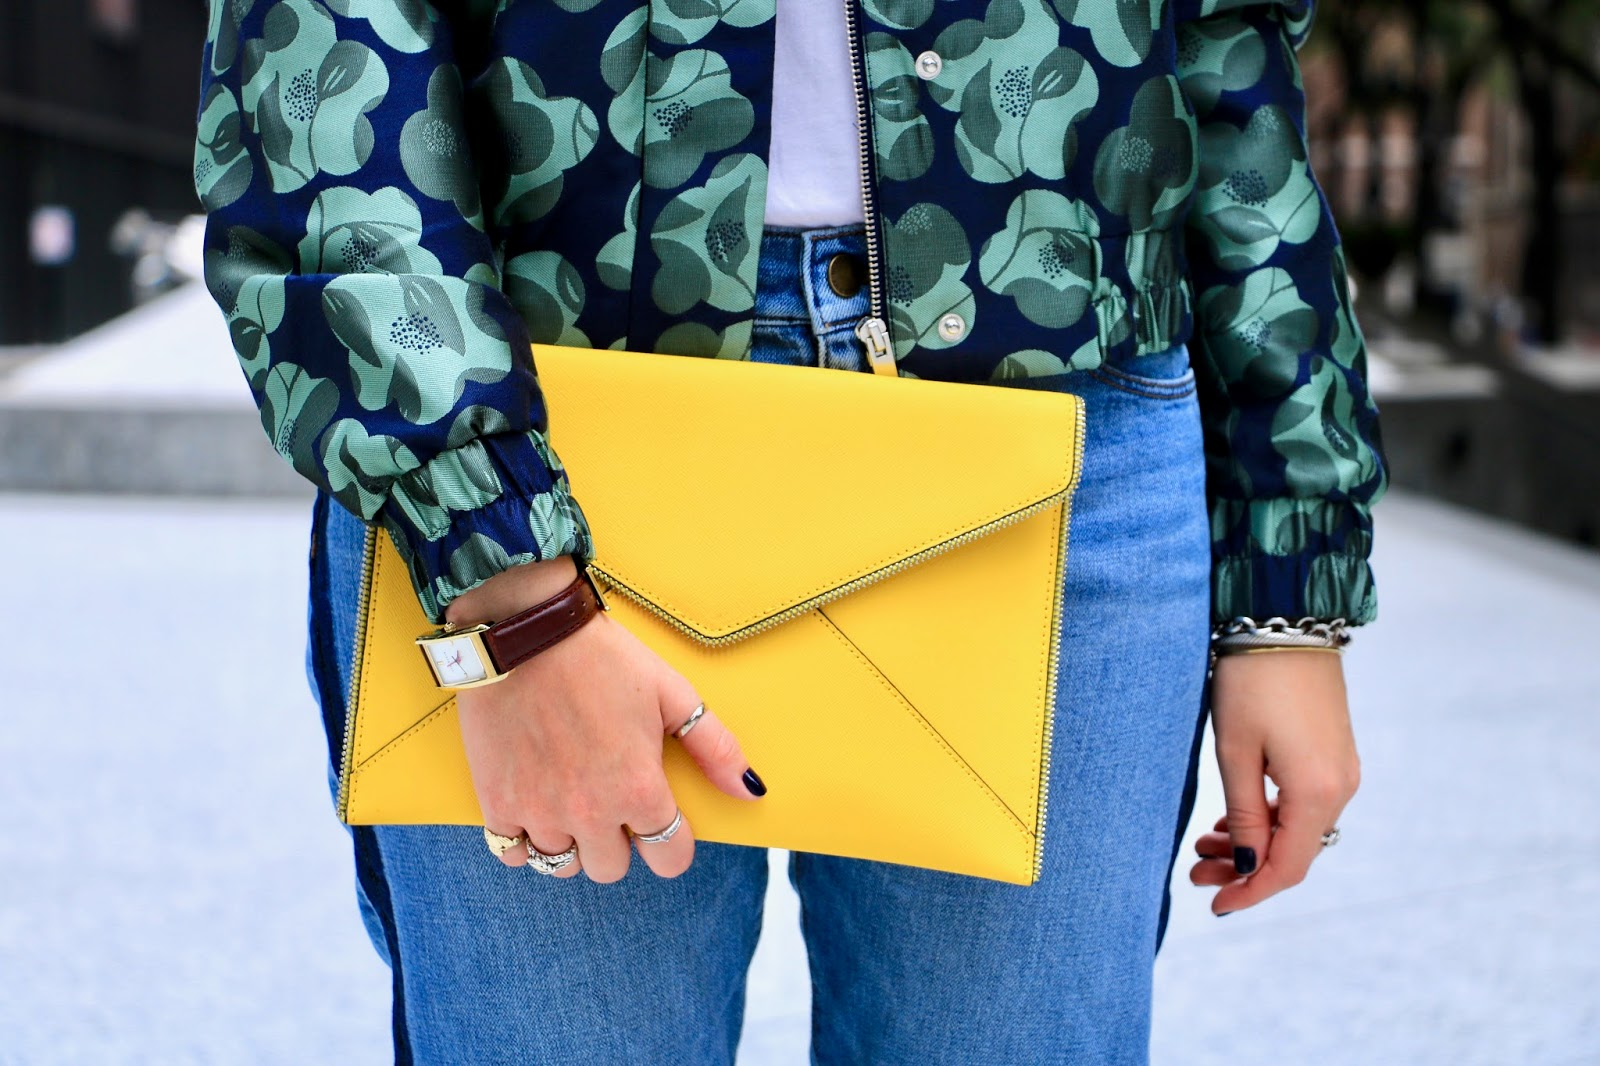 NYC Fashion blogger Kathleen Harper with a yellow Rebecca Minkoff envelope clutch